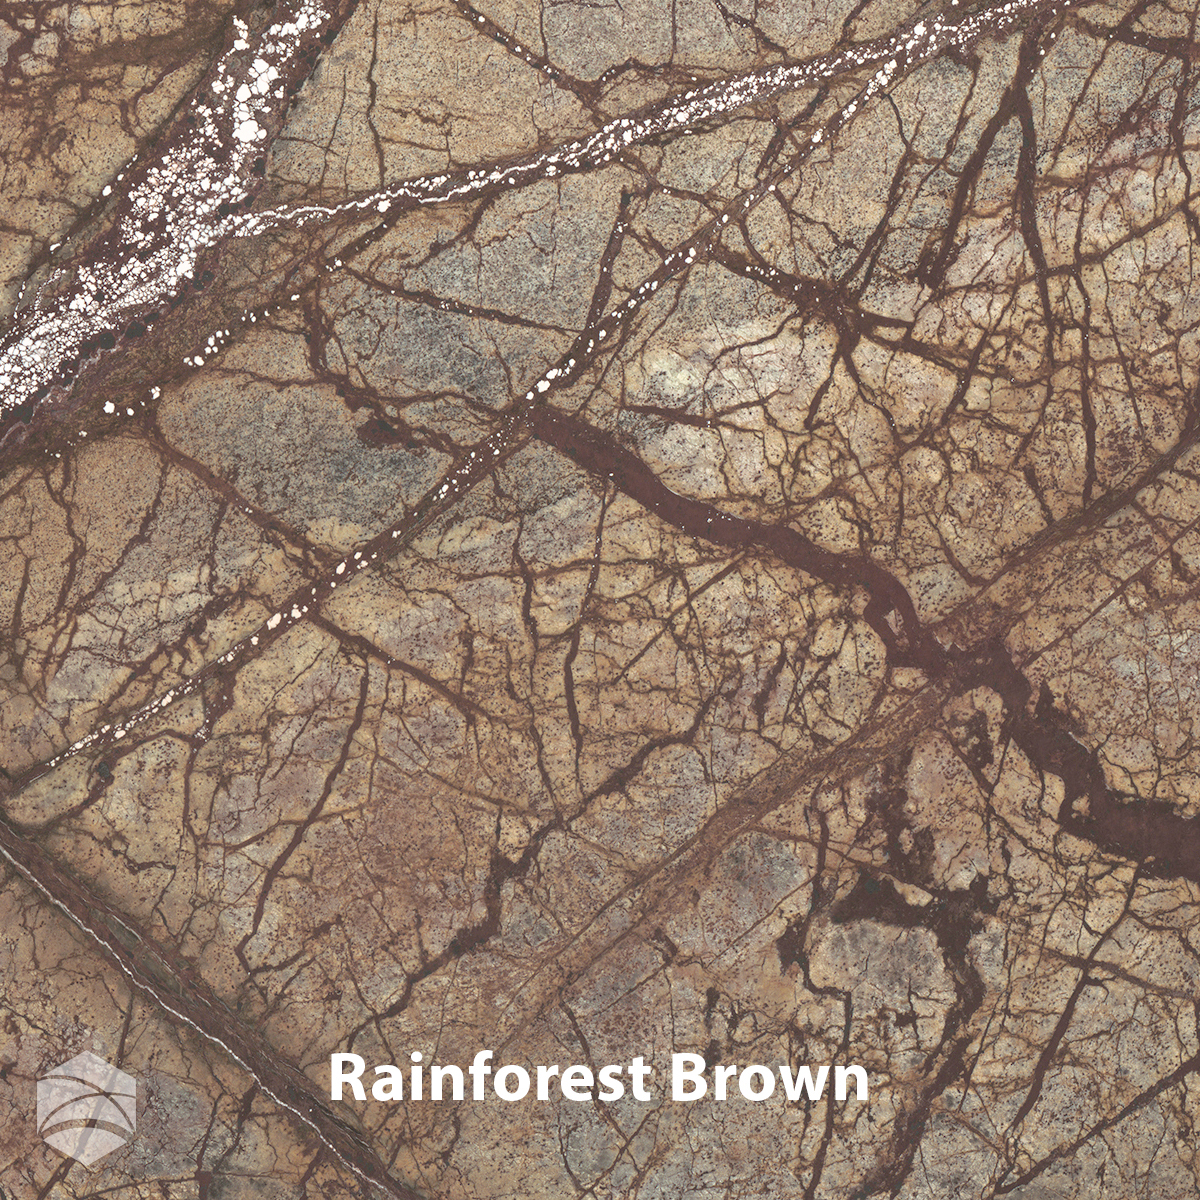 Rainforest Brown_V2_12x12.jpg